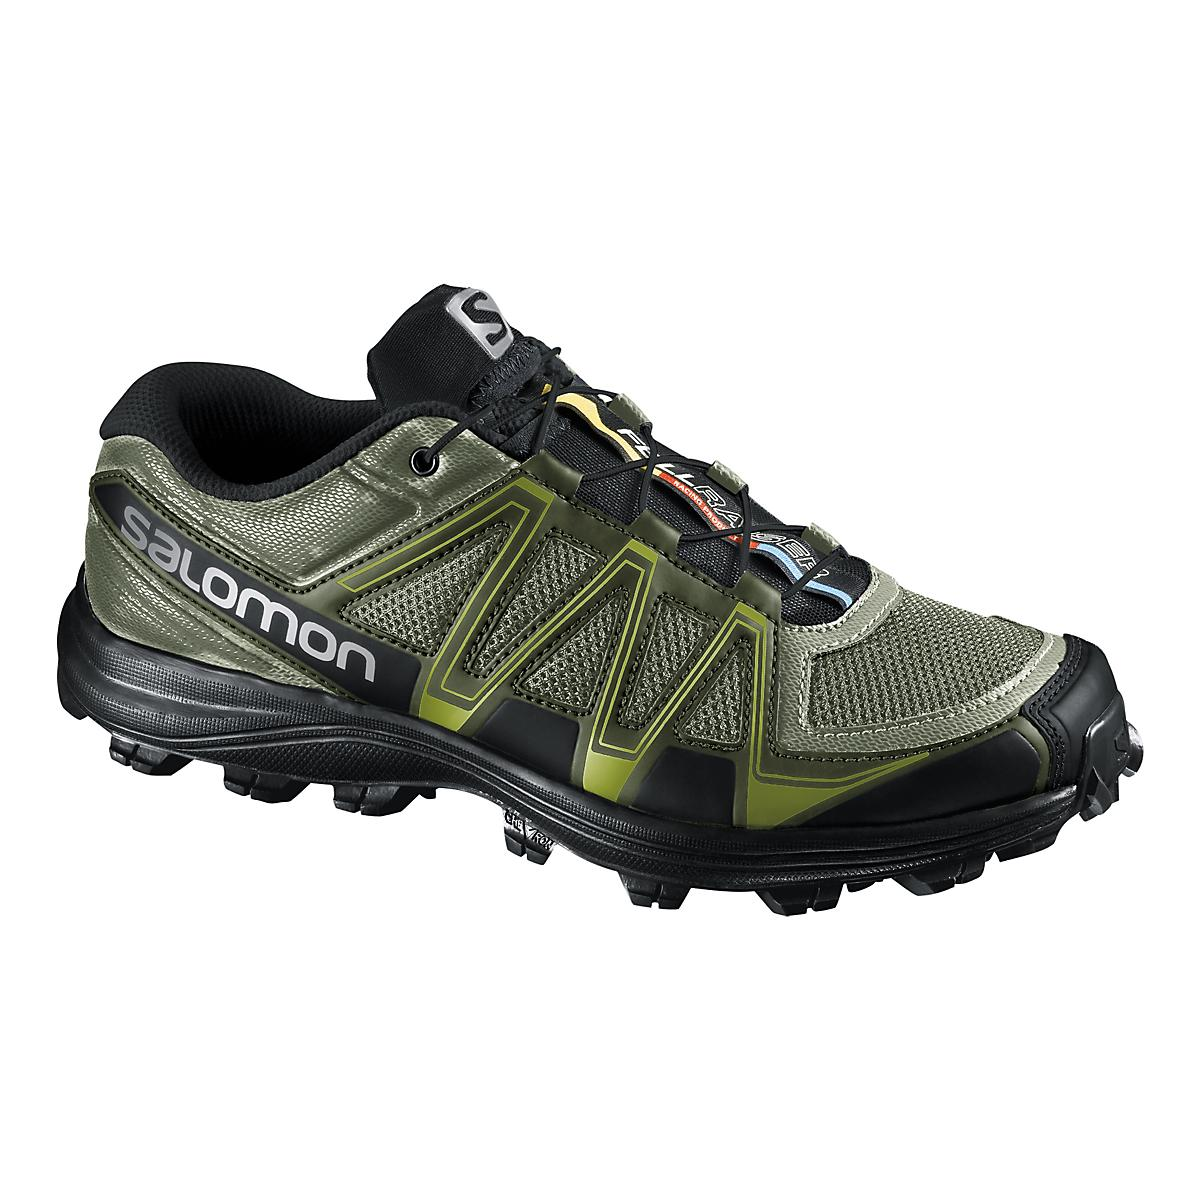 Men's Salomon�Fellraiser